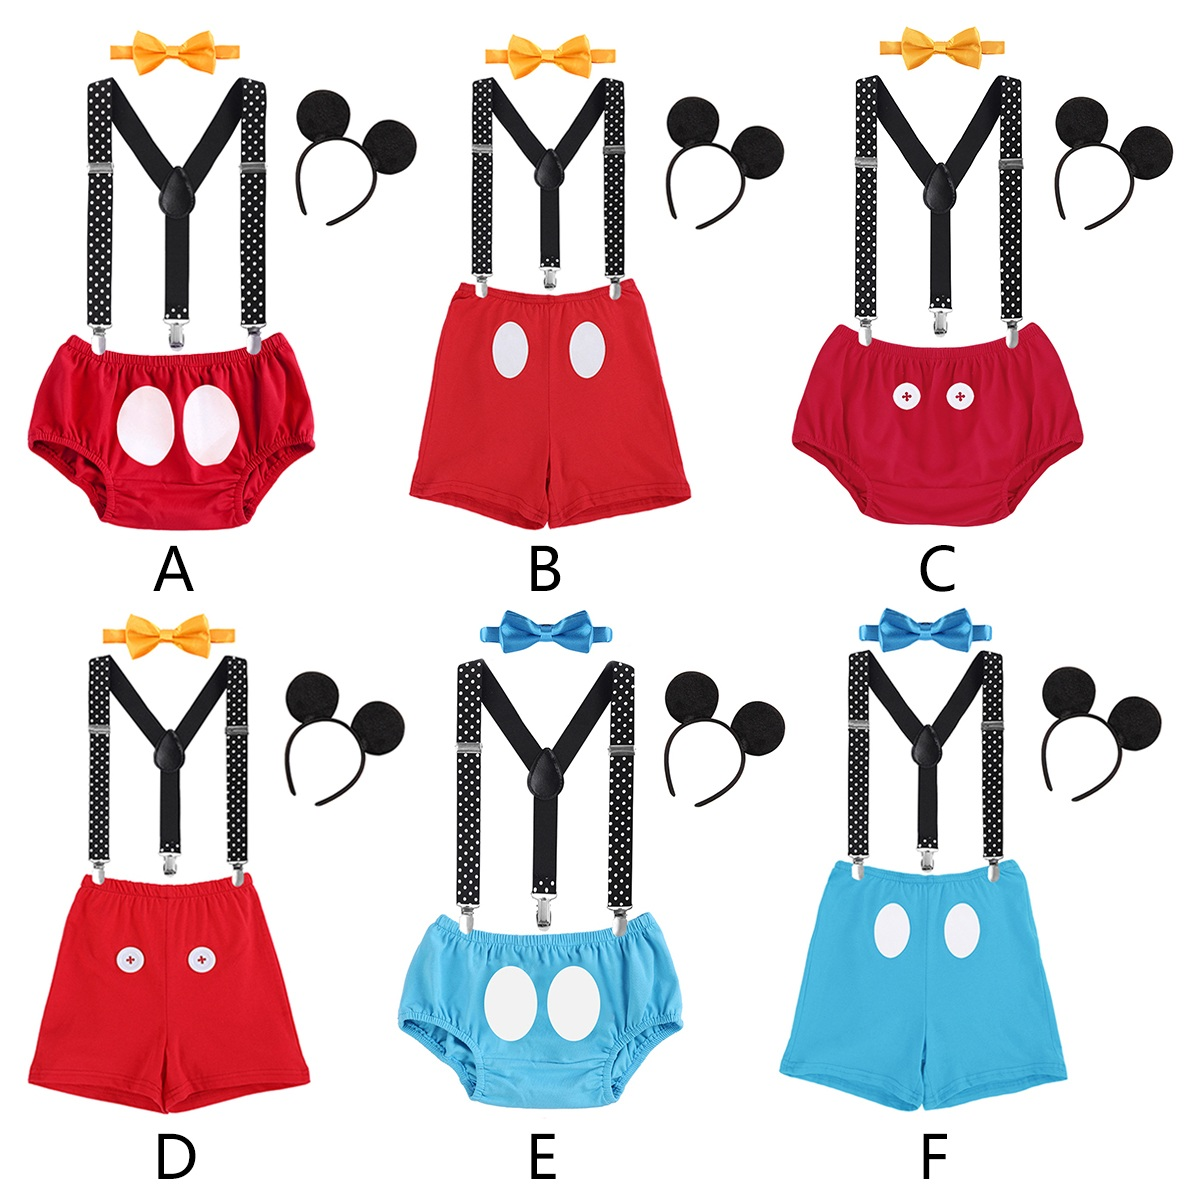 4pcs Set Baby Boy Girl Mickey Mouse Cake Smash Outfits 1st Birthday Party Suspender Pants Headband Bow Tie Photo Prop Clothes